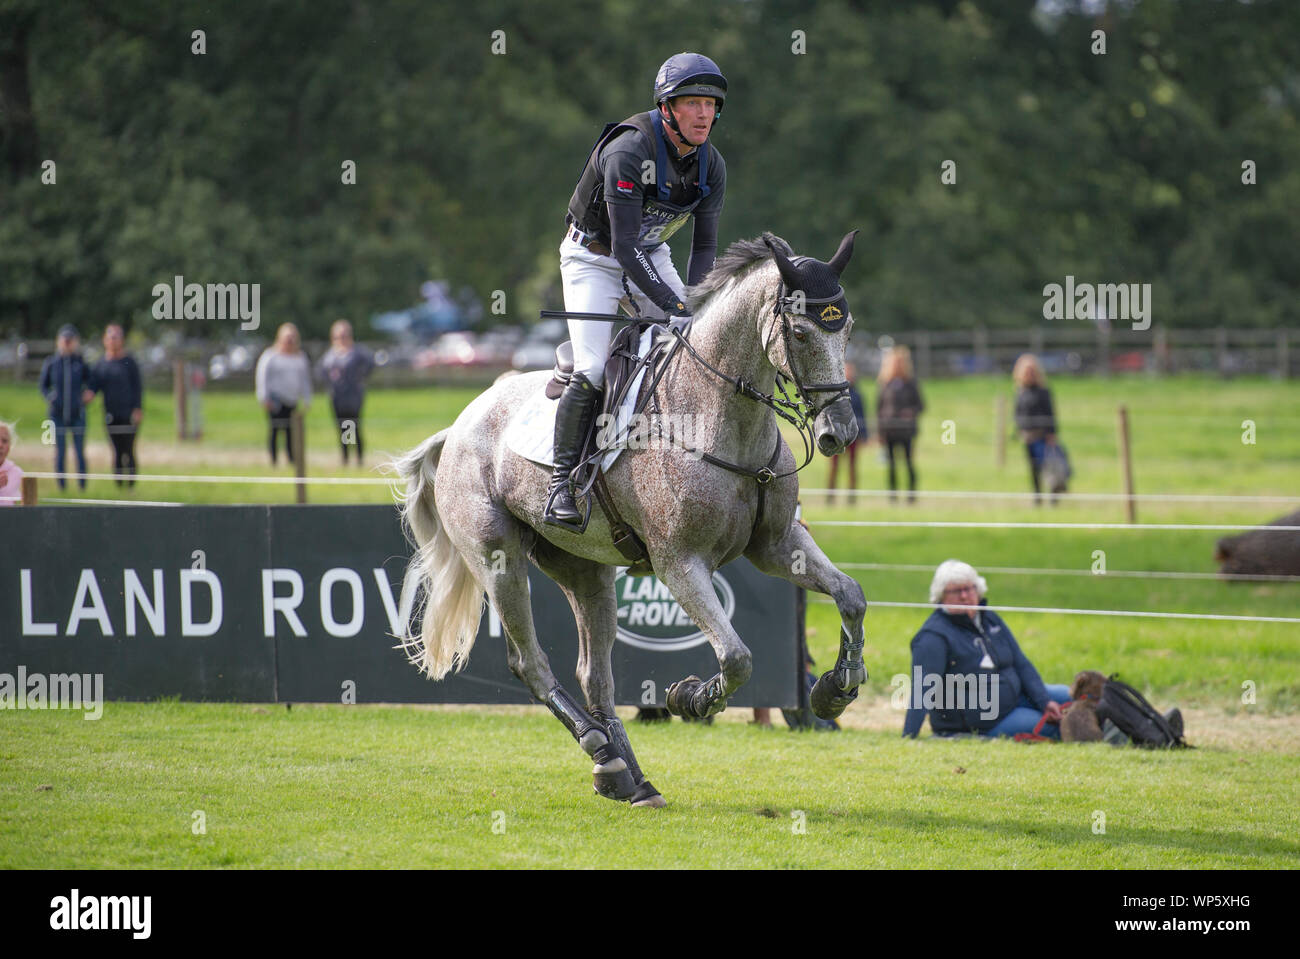 Stamford, UK, Saturday 7th September, 2019. Oliver Townend (GBR) riding Ballaghmor Class during the Land Rover Burghley Horse Trials,  Cross Country phase. © Julie Priestley/Alamy Live News Stock Photo